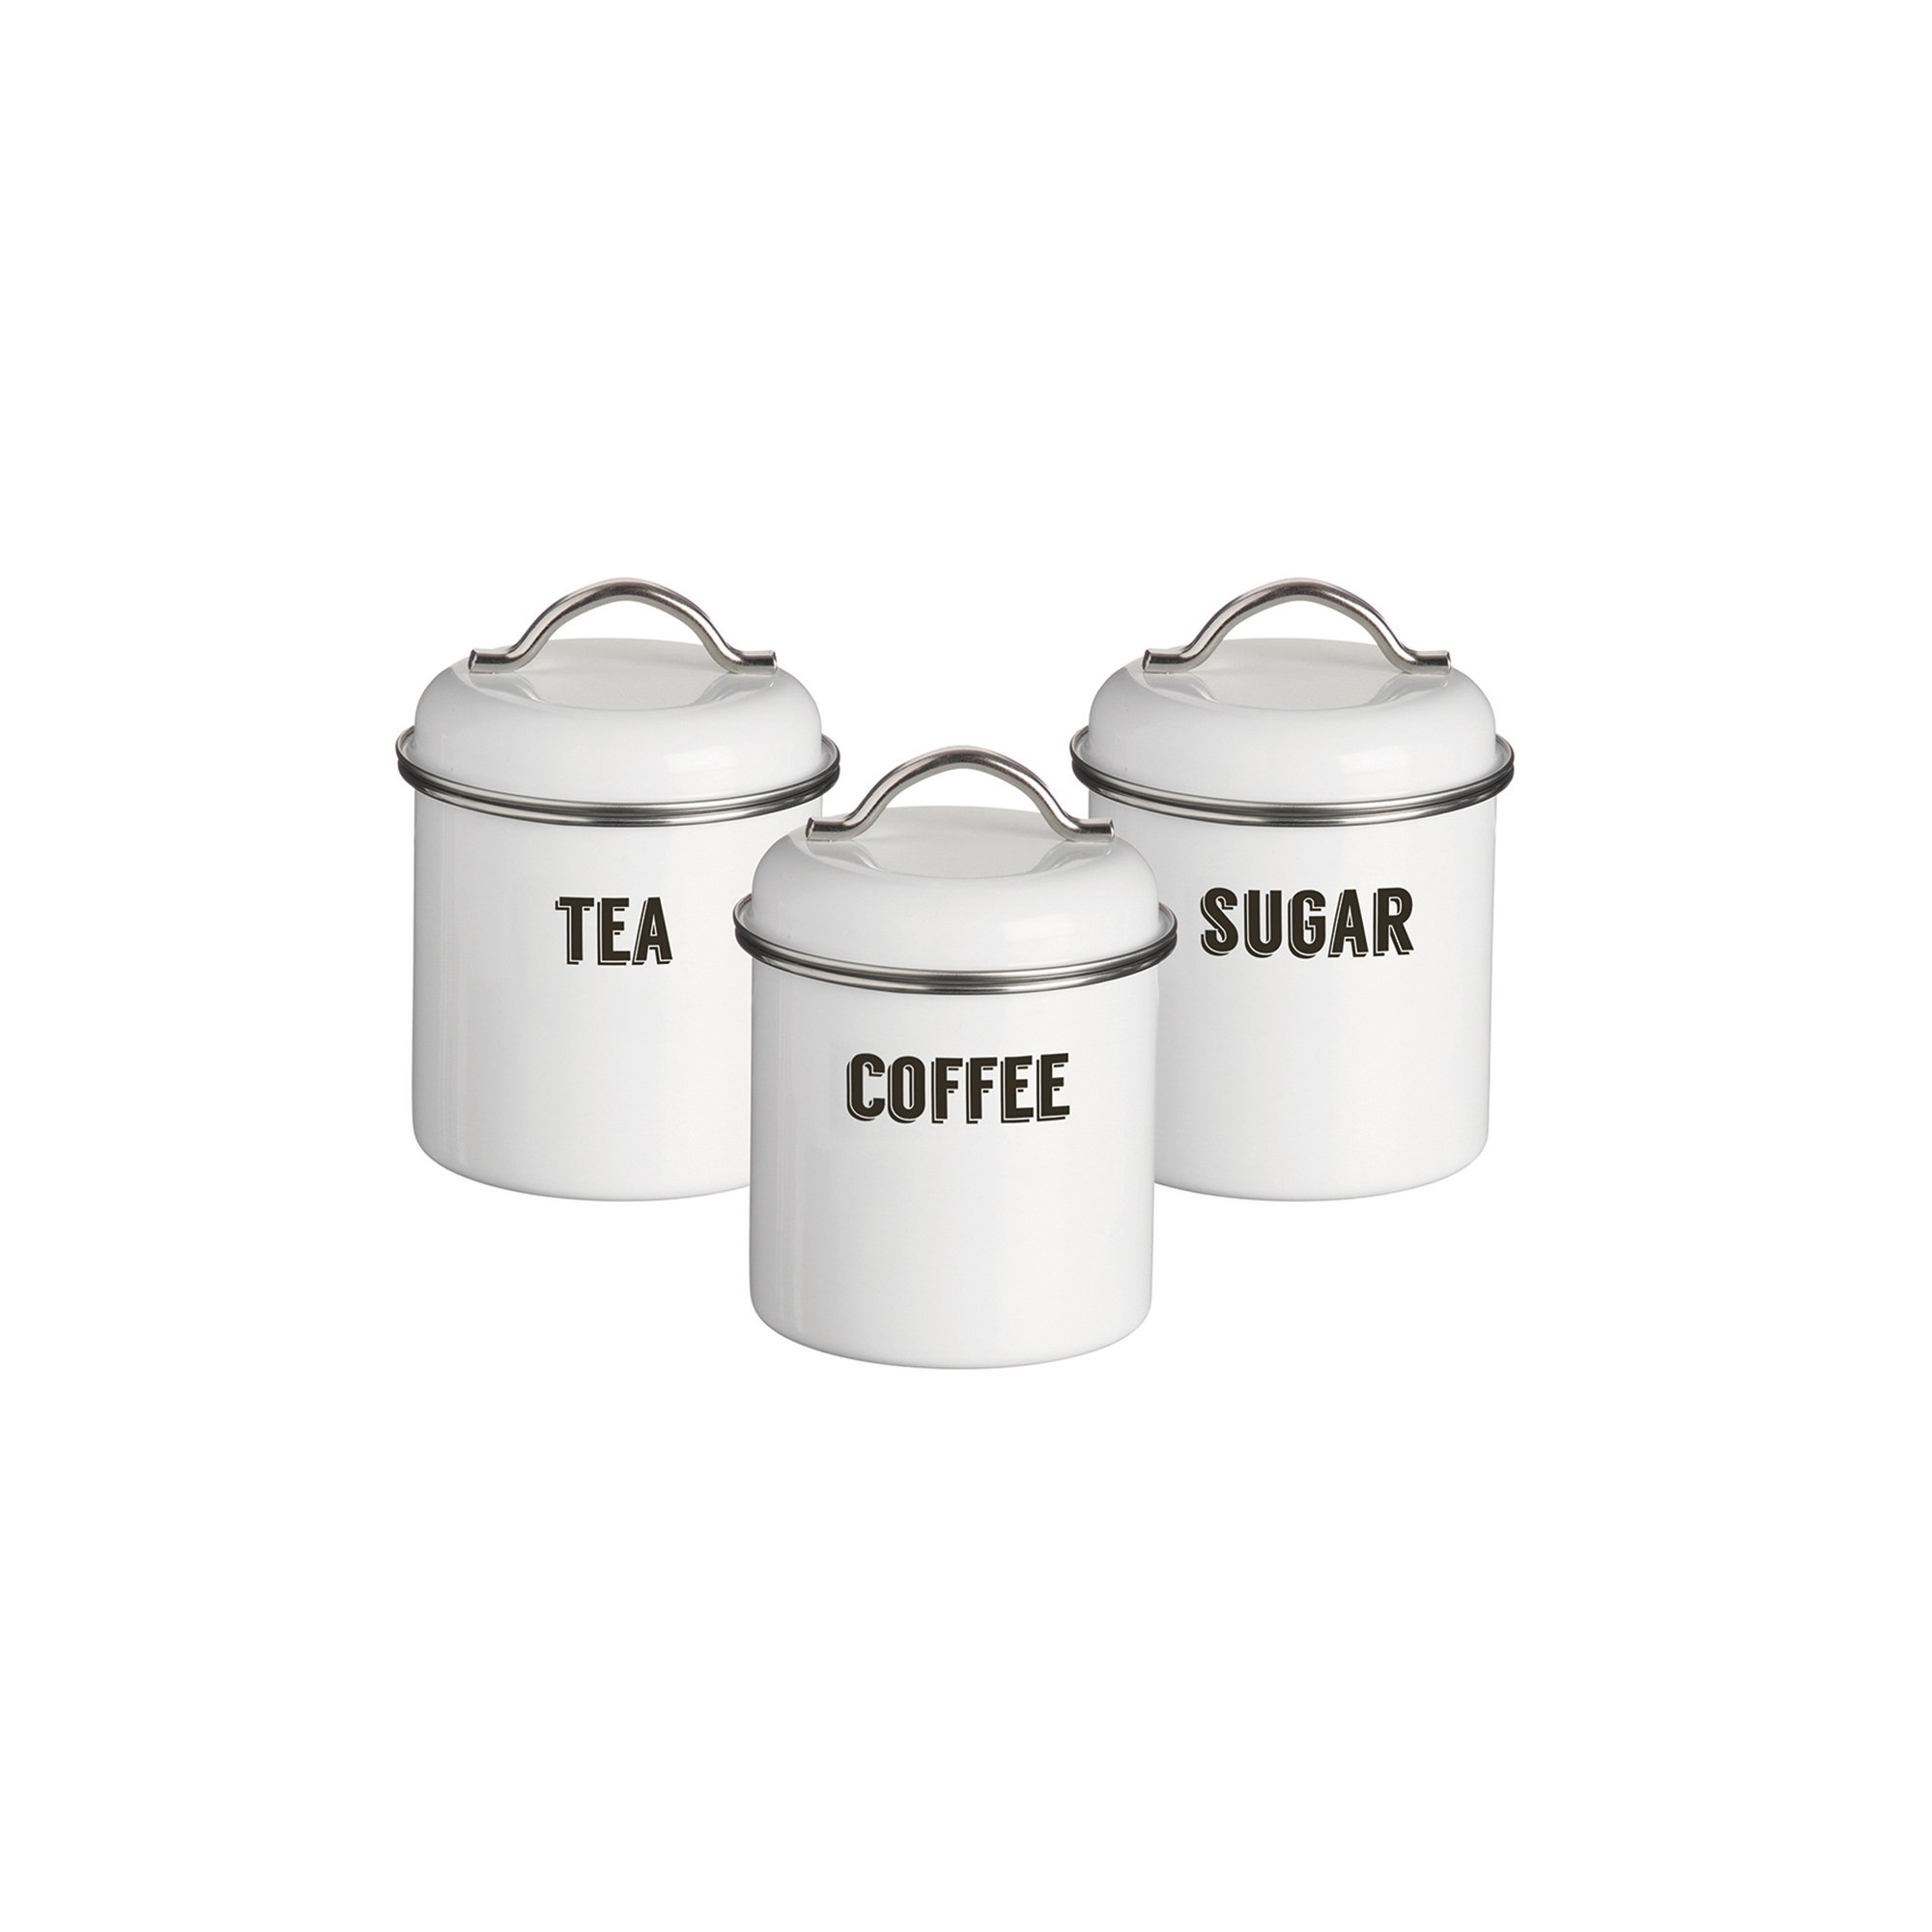 Typhoon Living Coated Steel Retro 3-Piece Canister Set, 23-3/4-Fluid Ounces, White by Typhoon